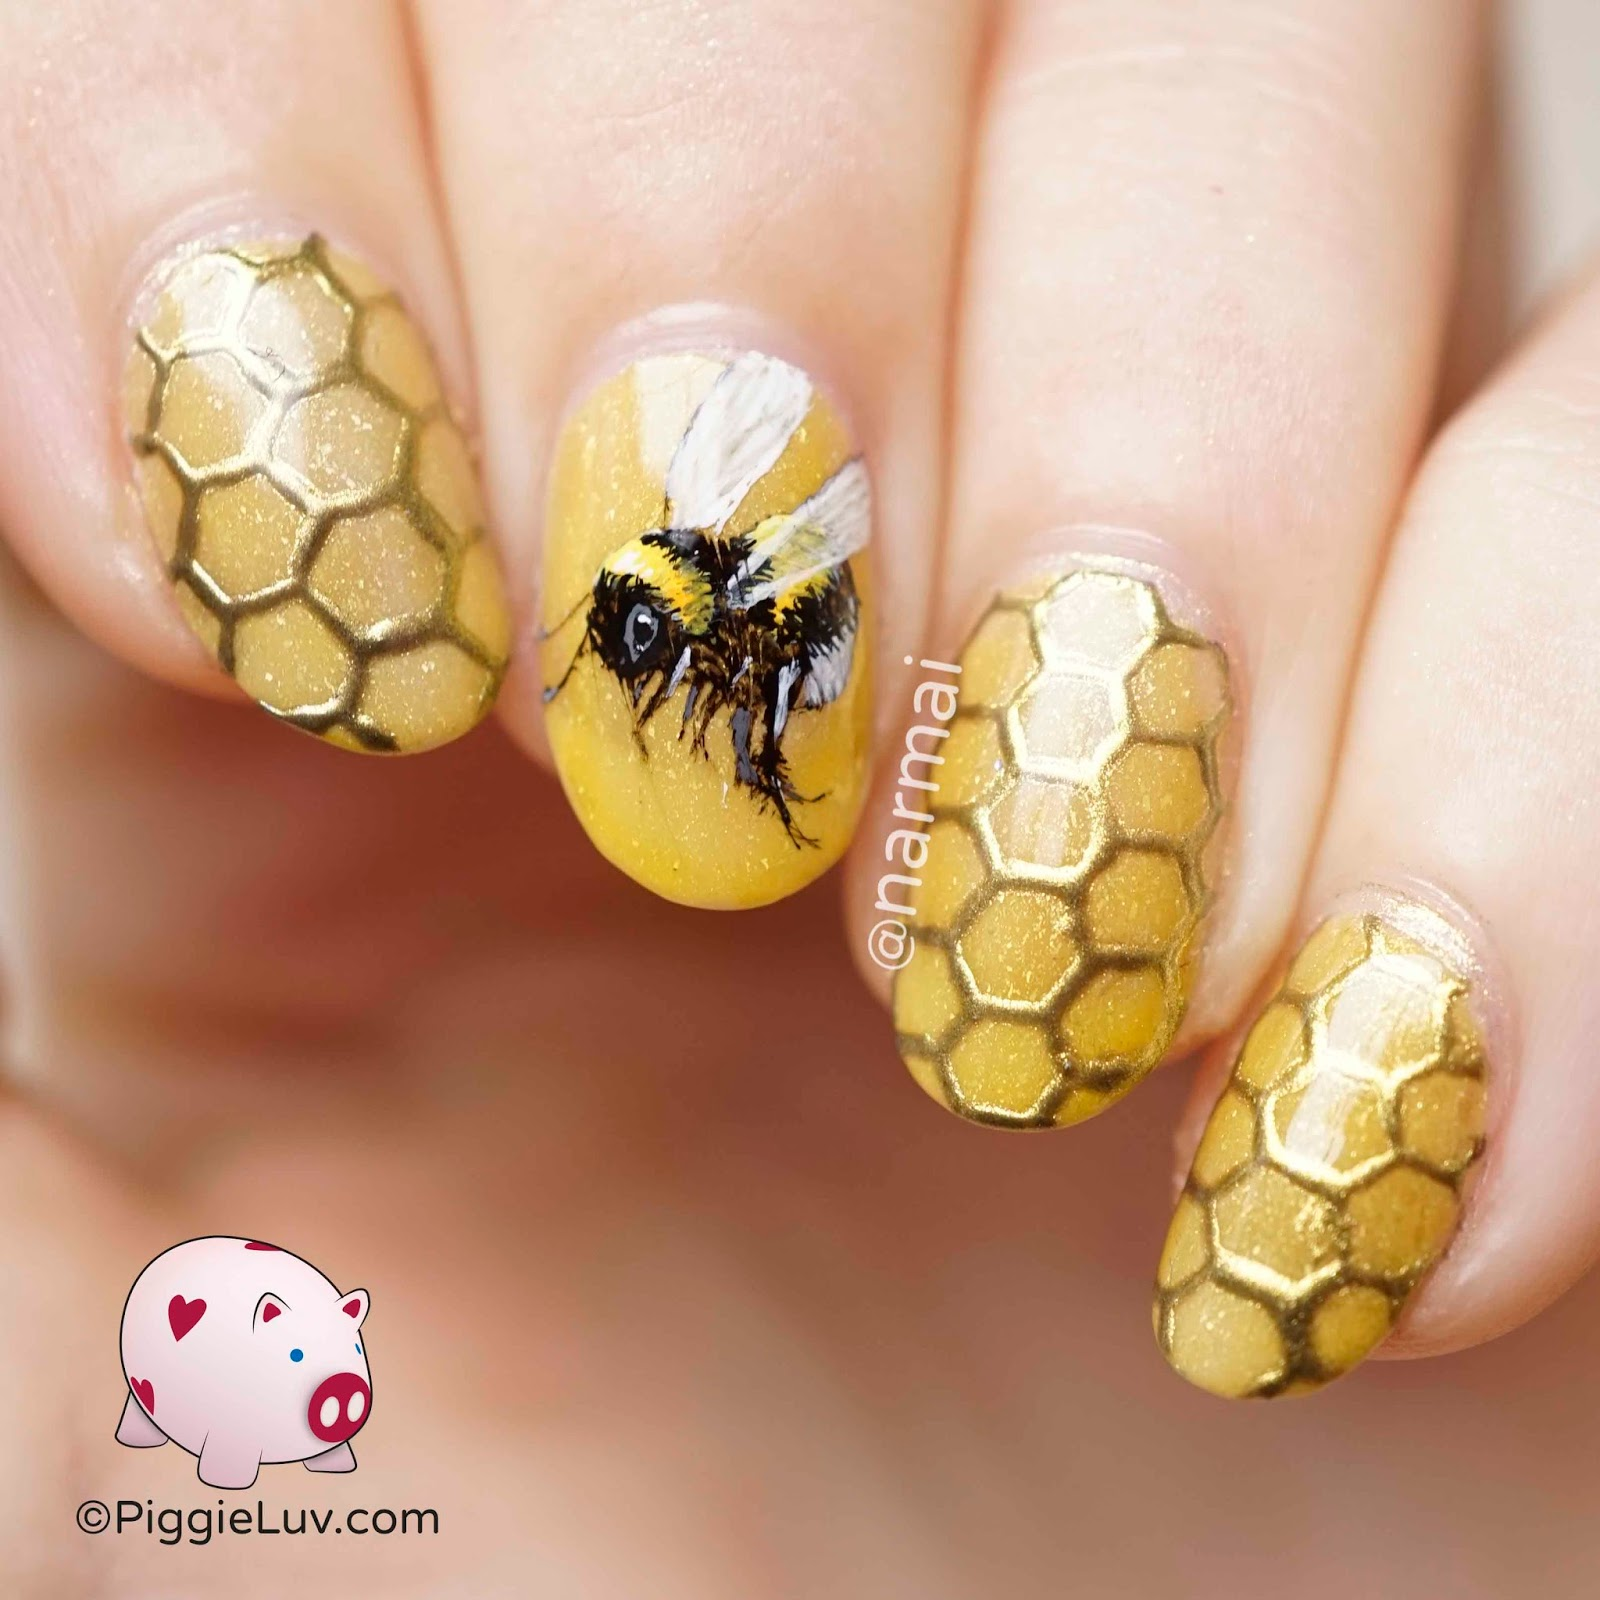 Piggieluv honeybee chrome nail art honeybee chrome nail art prinsesfo Choice Image